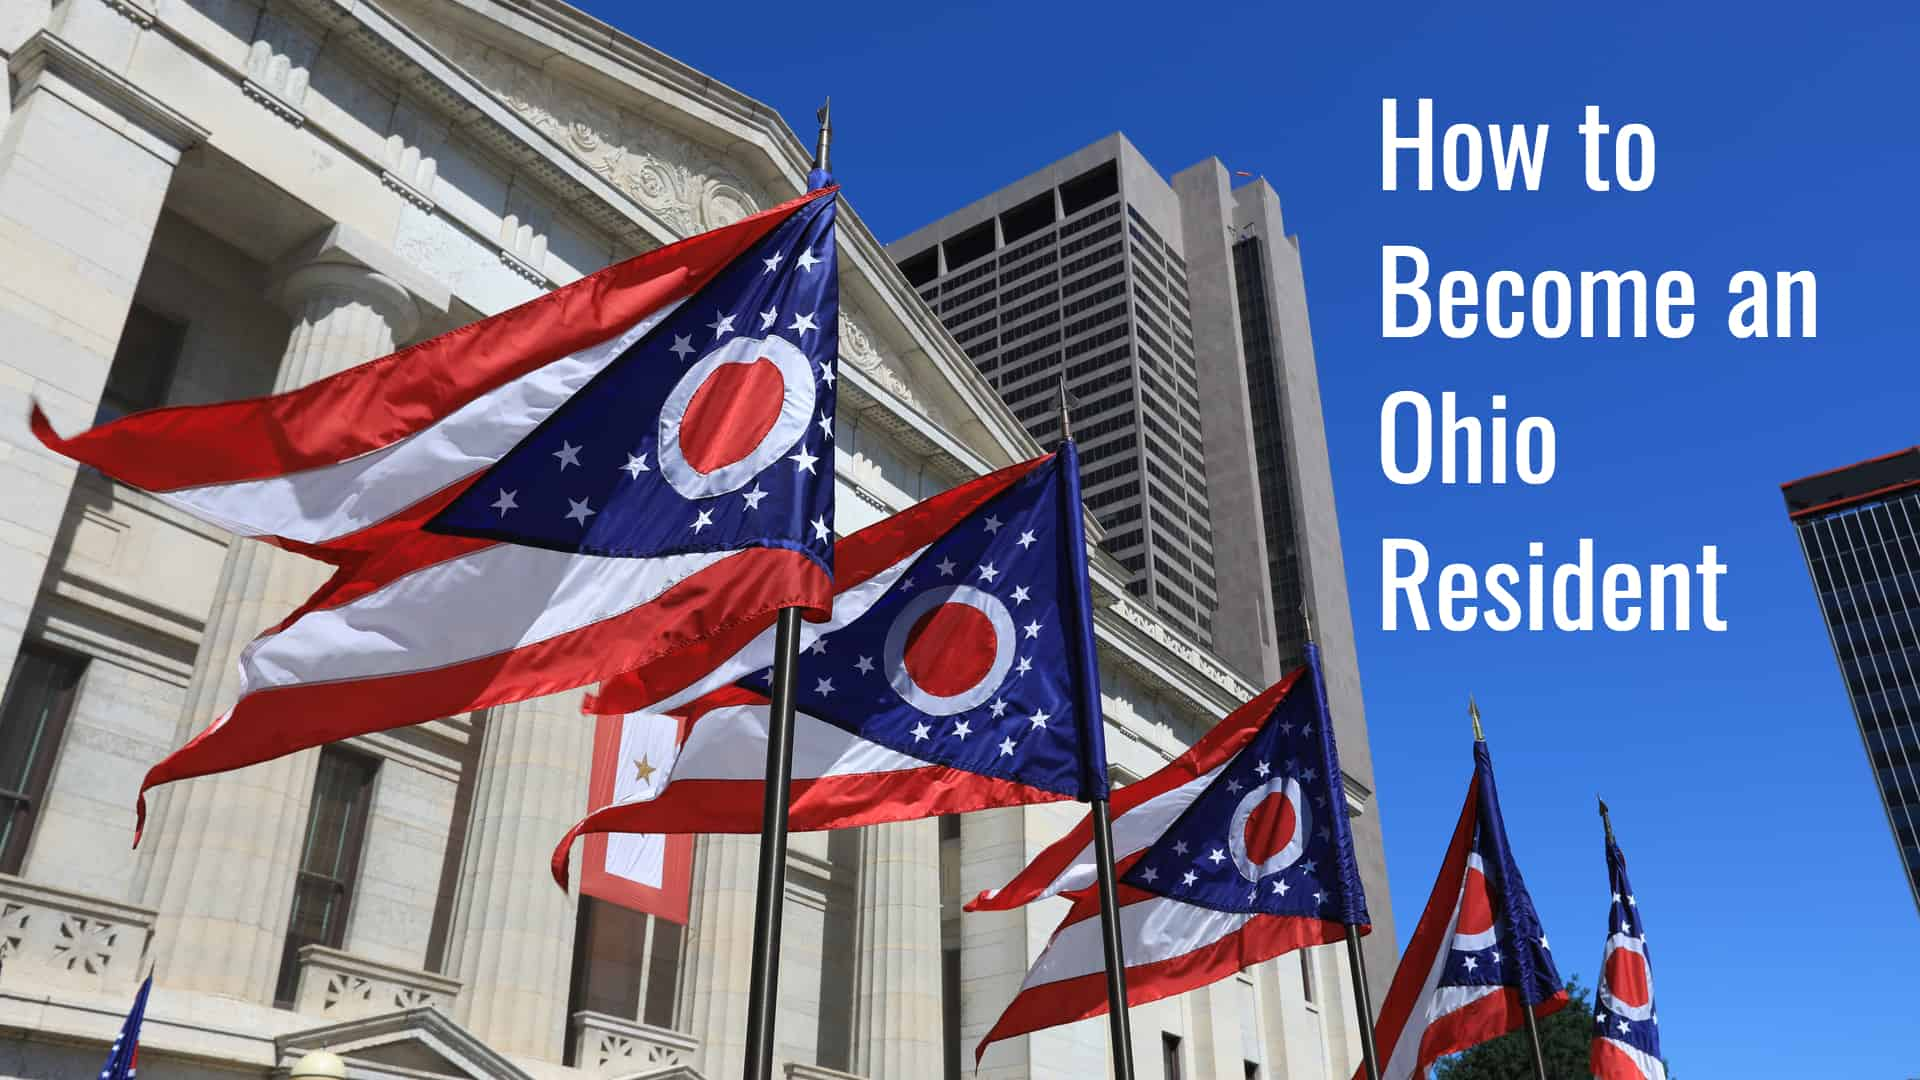 Ohio state flags waving in front of the statehouse.